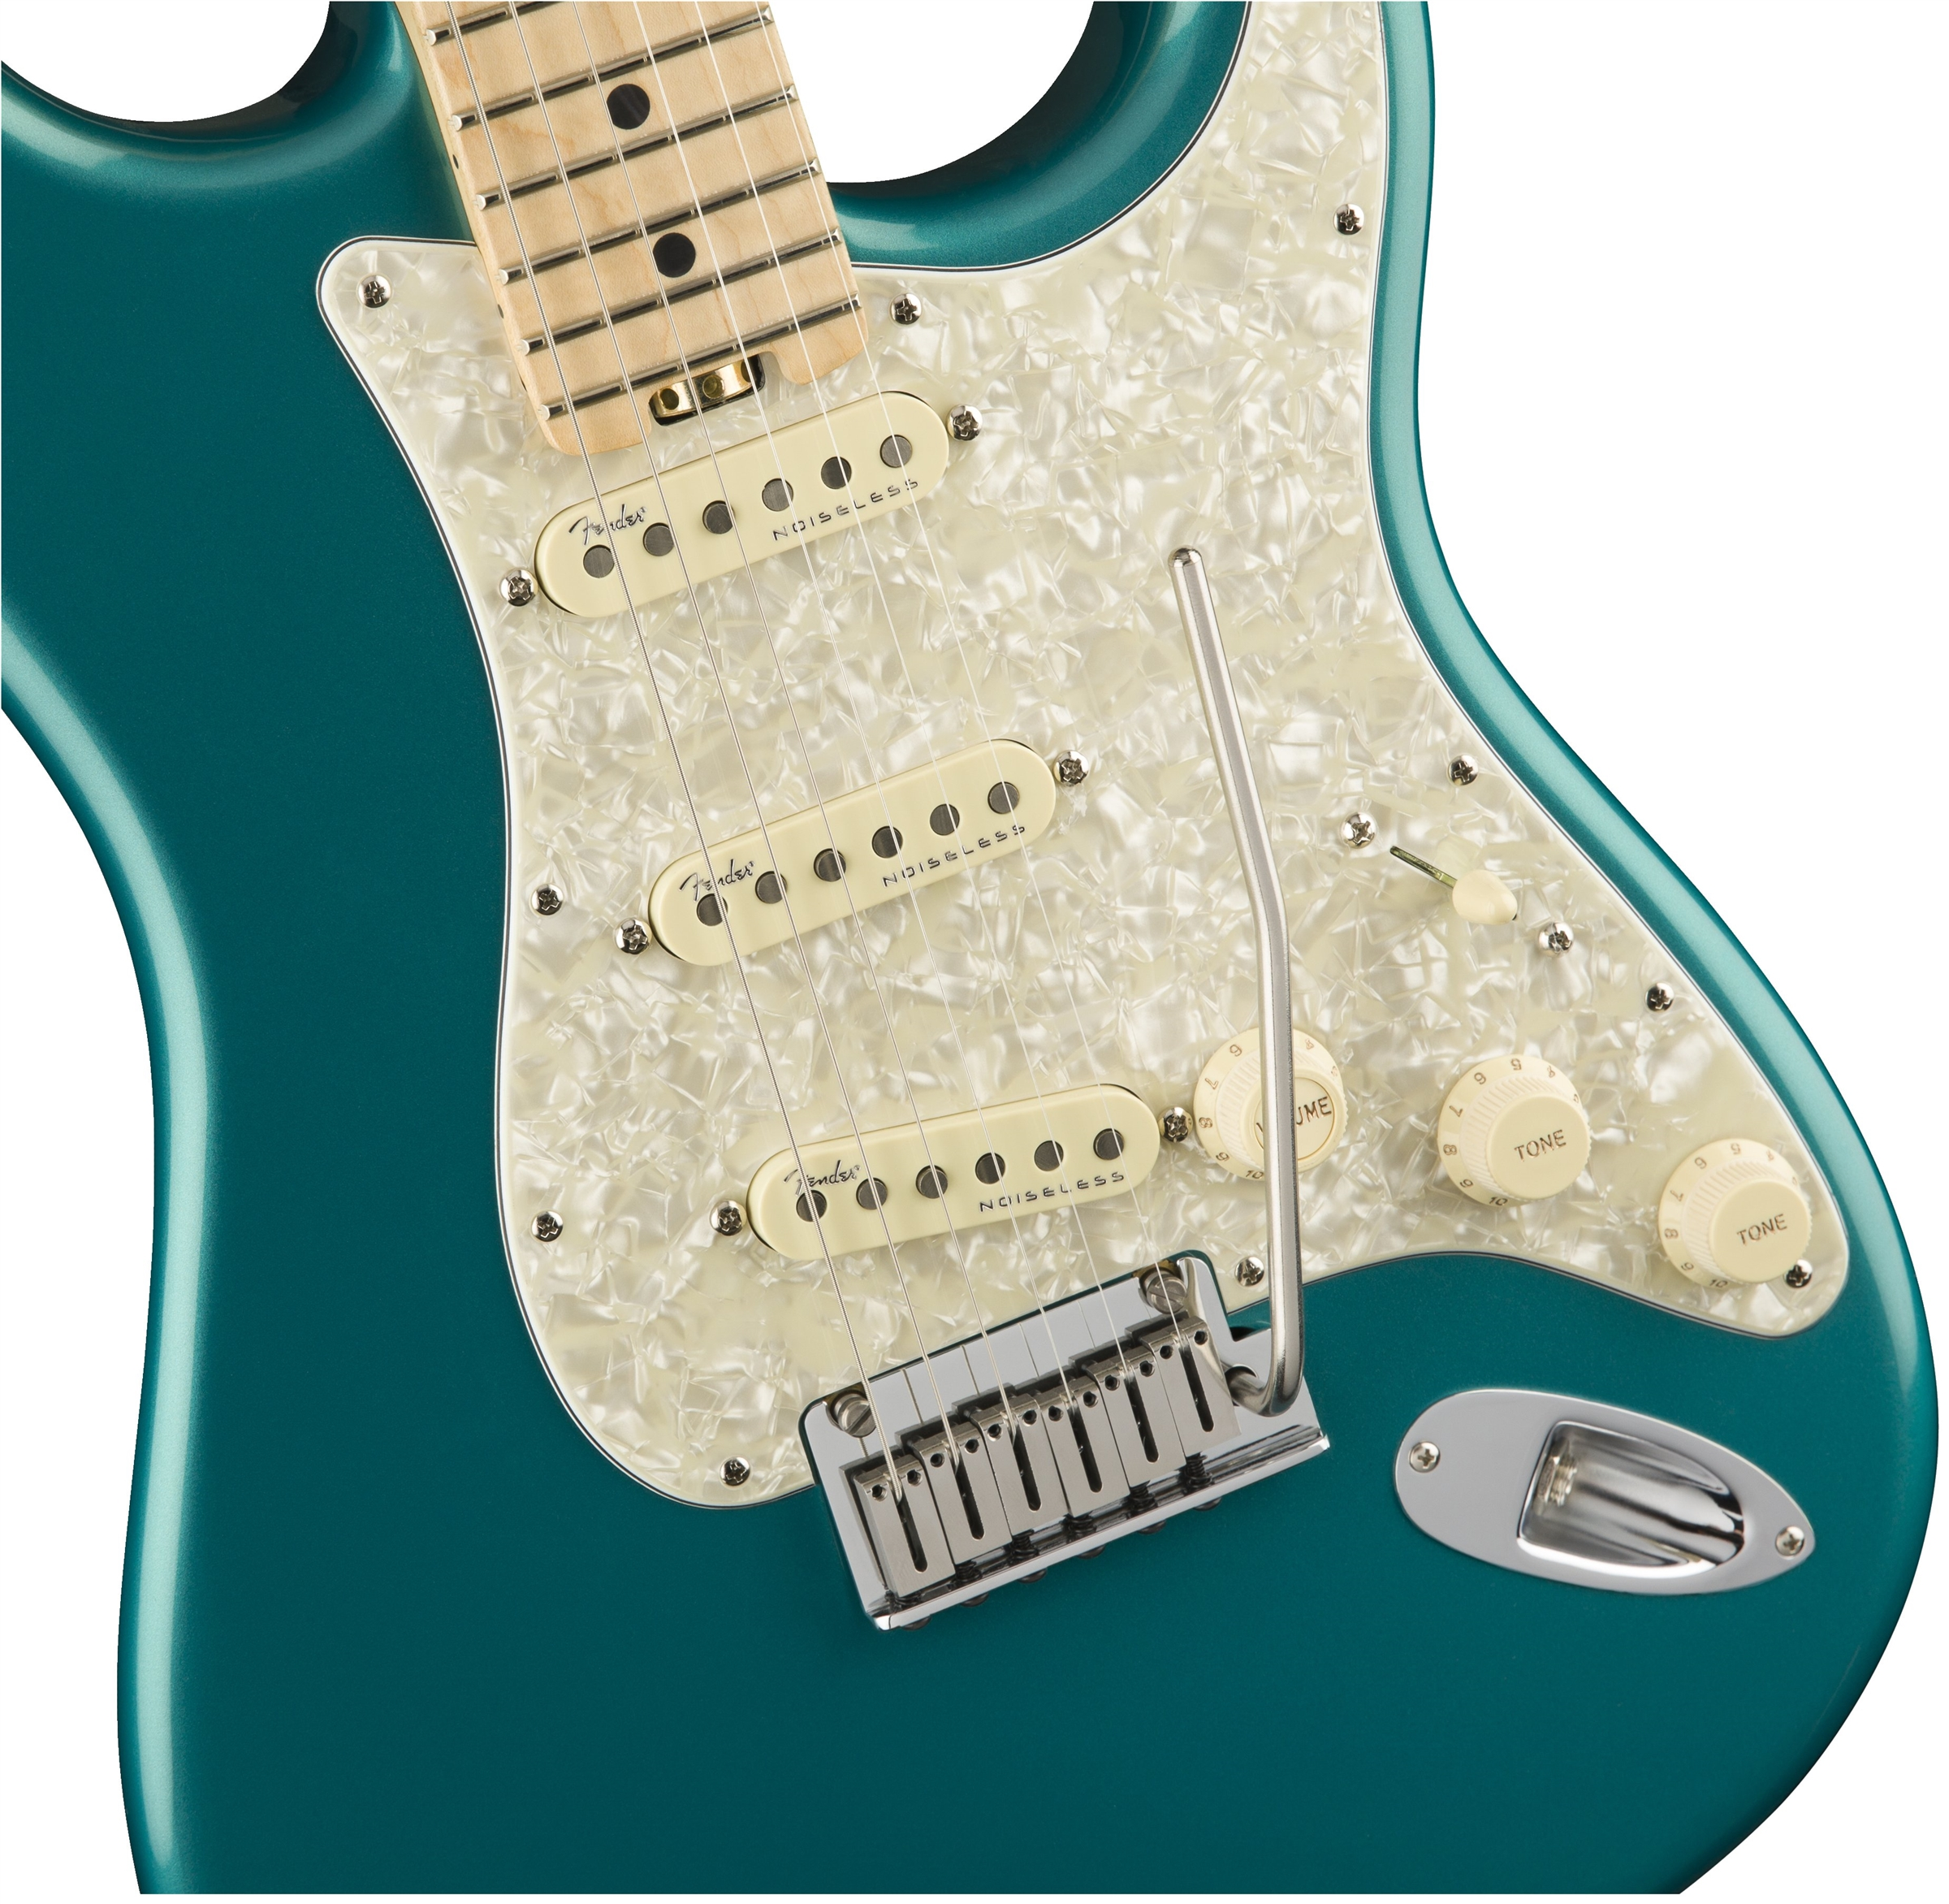 American Elite Stratocaster Electric Guitars Blend Control Options And Help Fender Guitar Forum